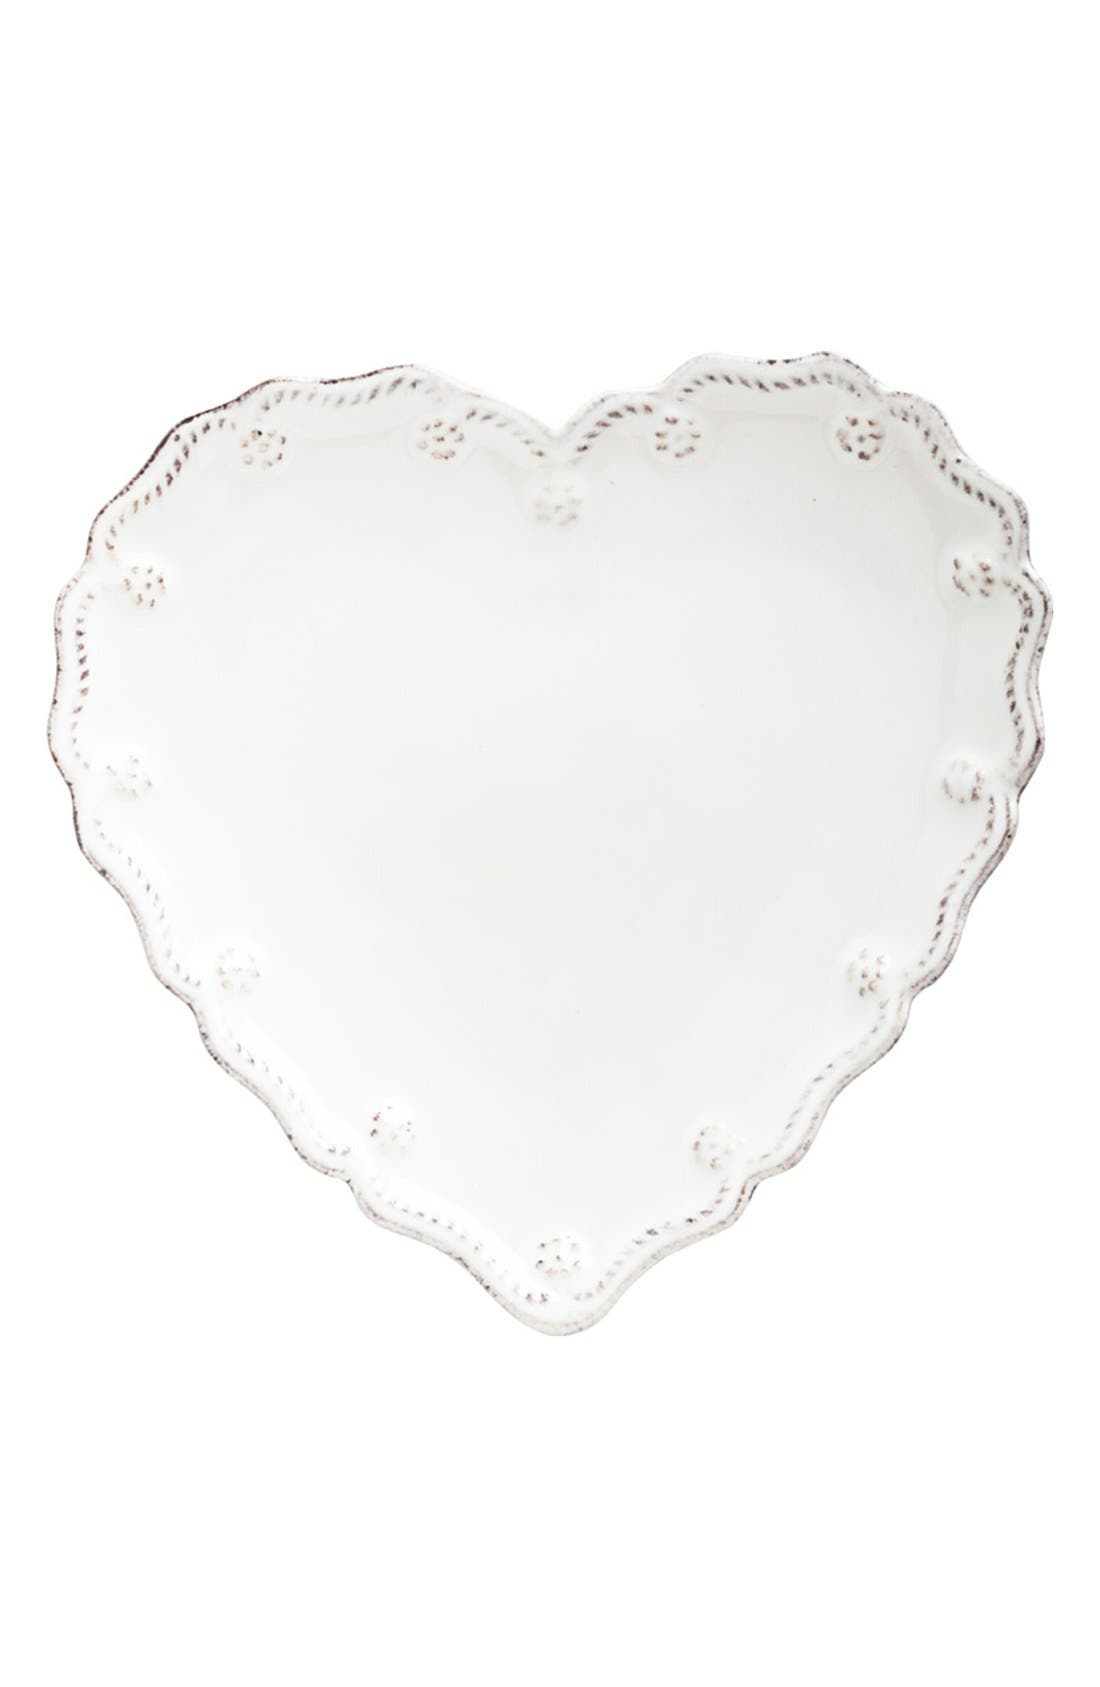 'Berry and Thread' Heart Shaped Cocktail Plates,                         Main,                         color, Whitewash